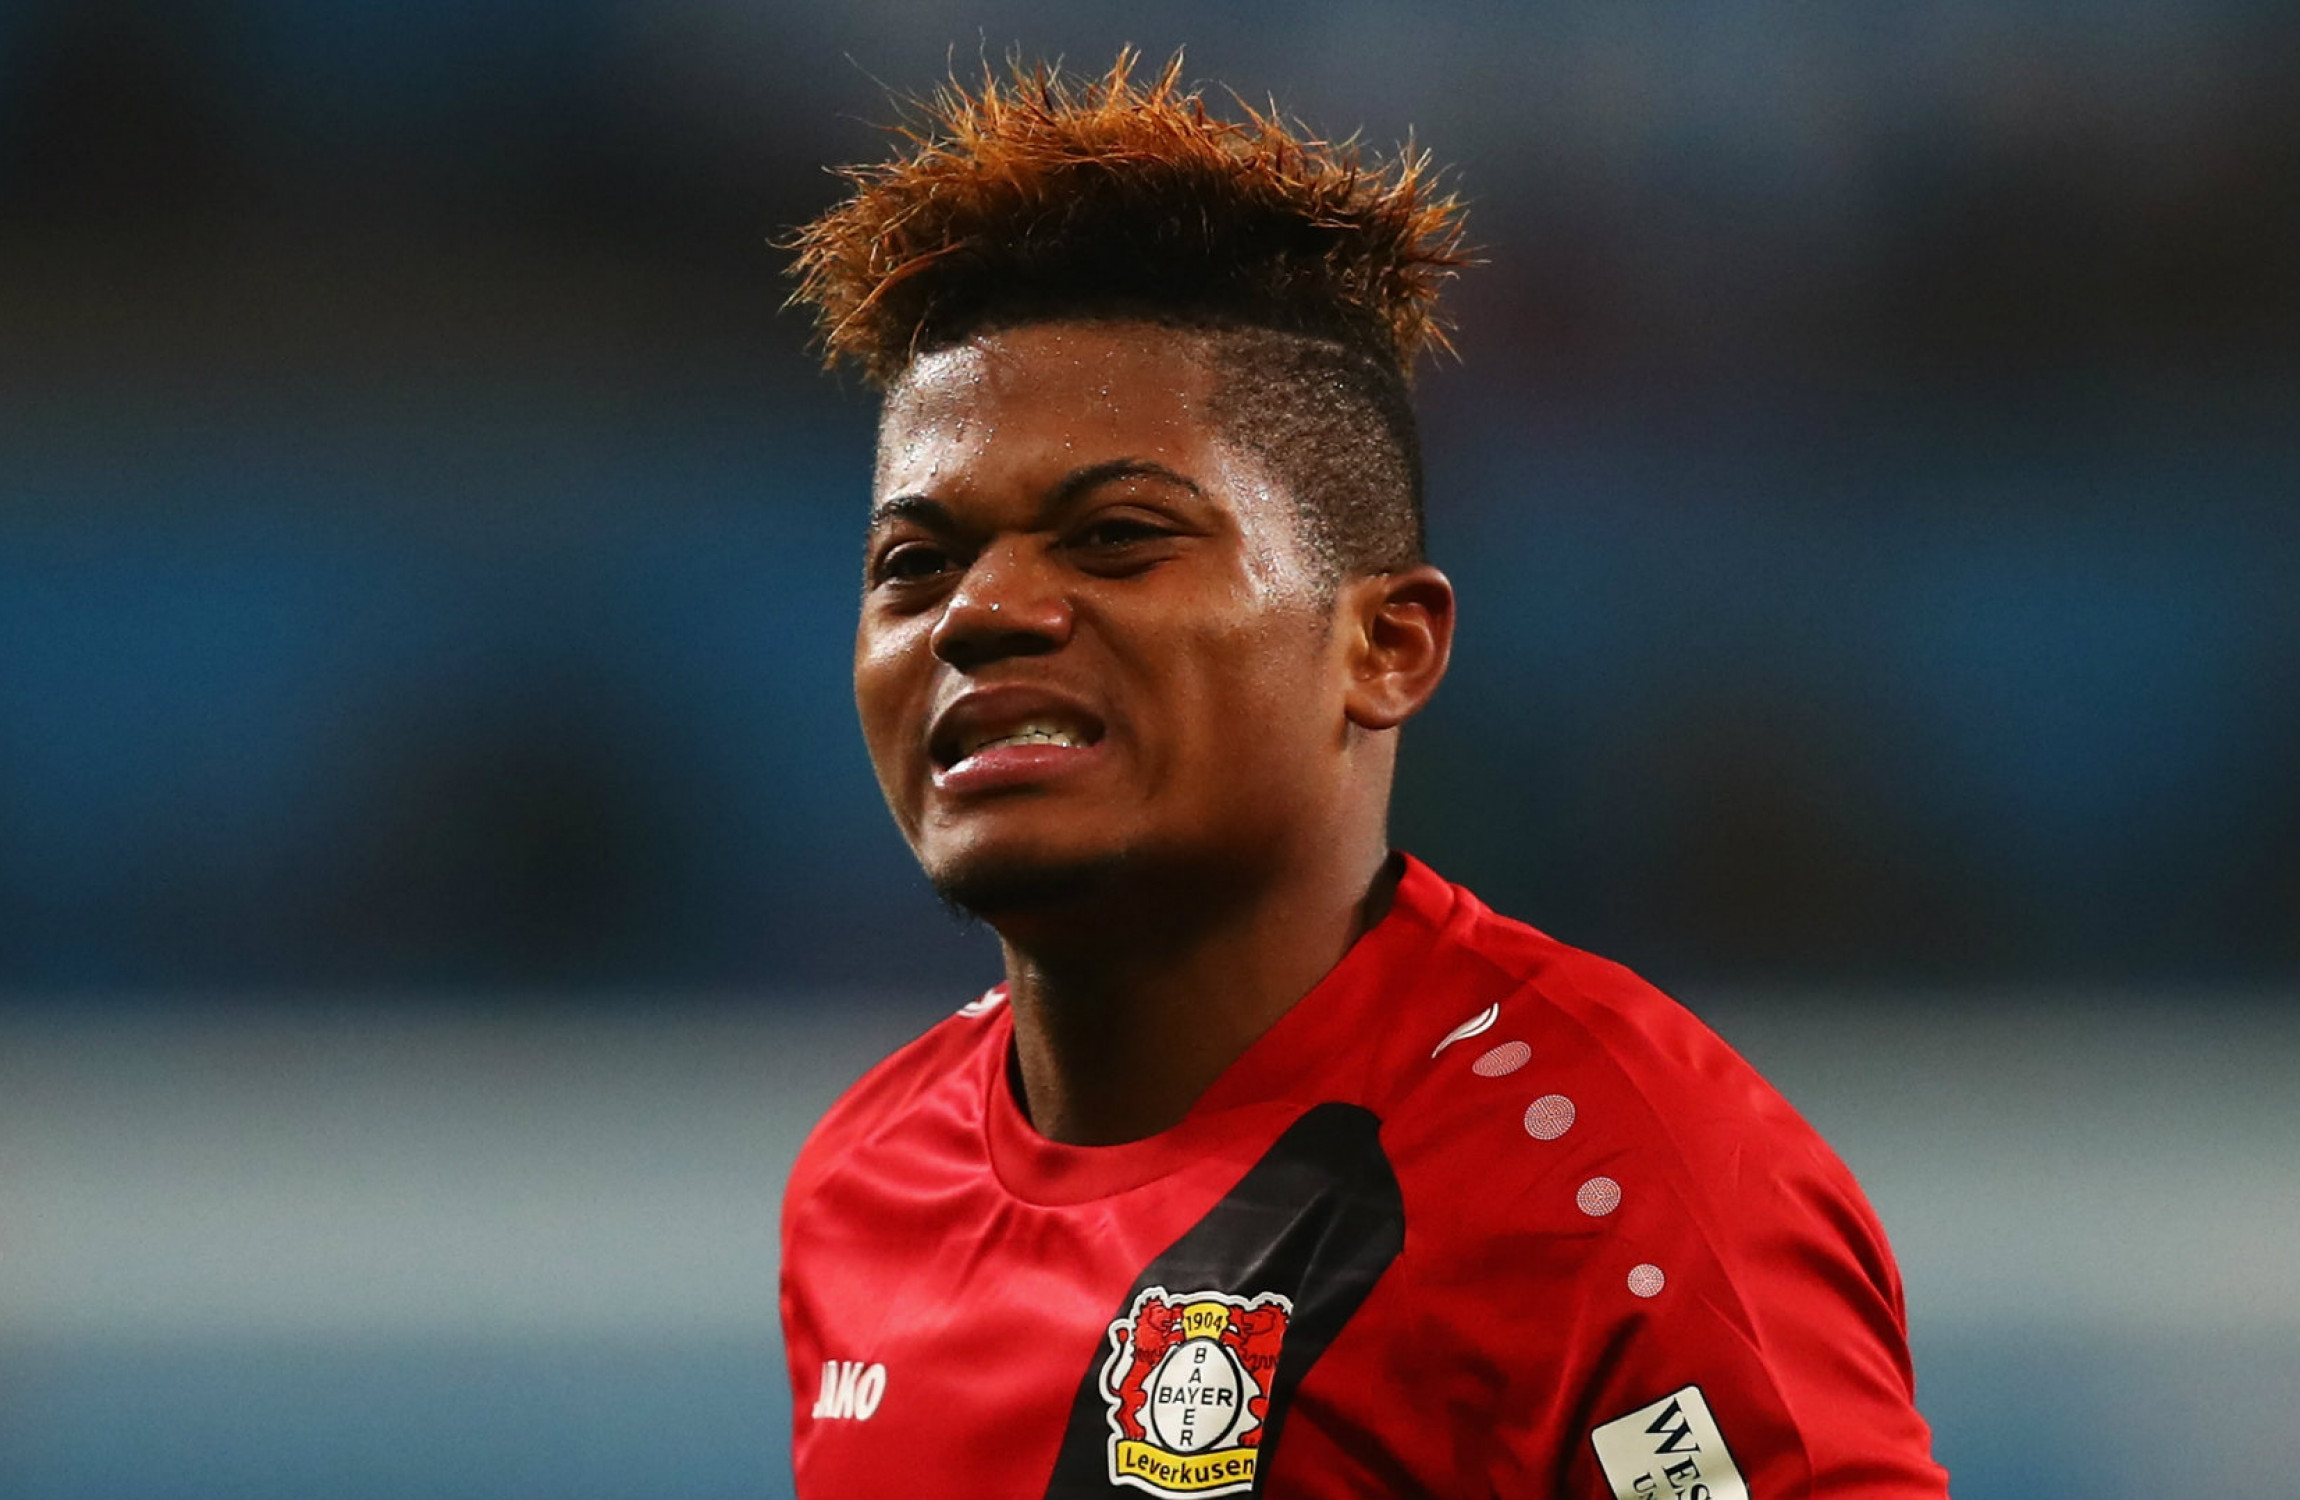 Leverkusen have no intention of selling Bailey amid Chelsea speculation